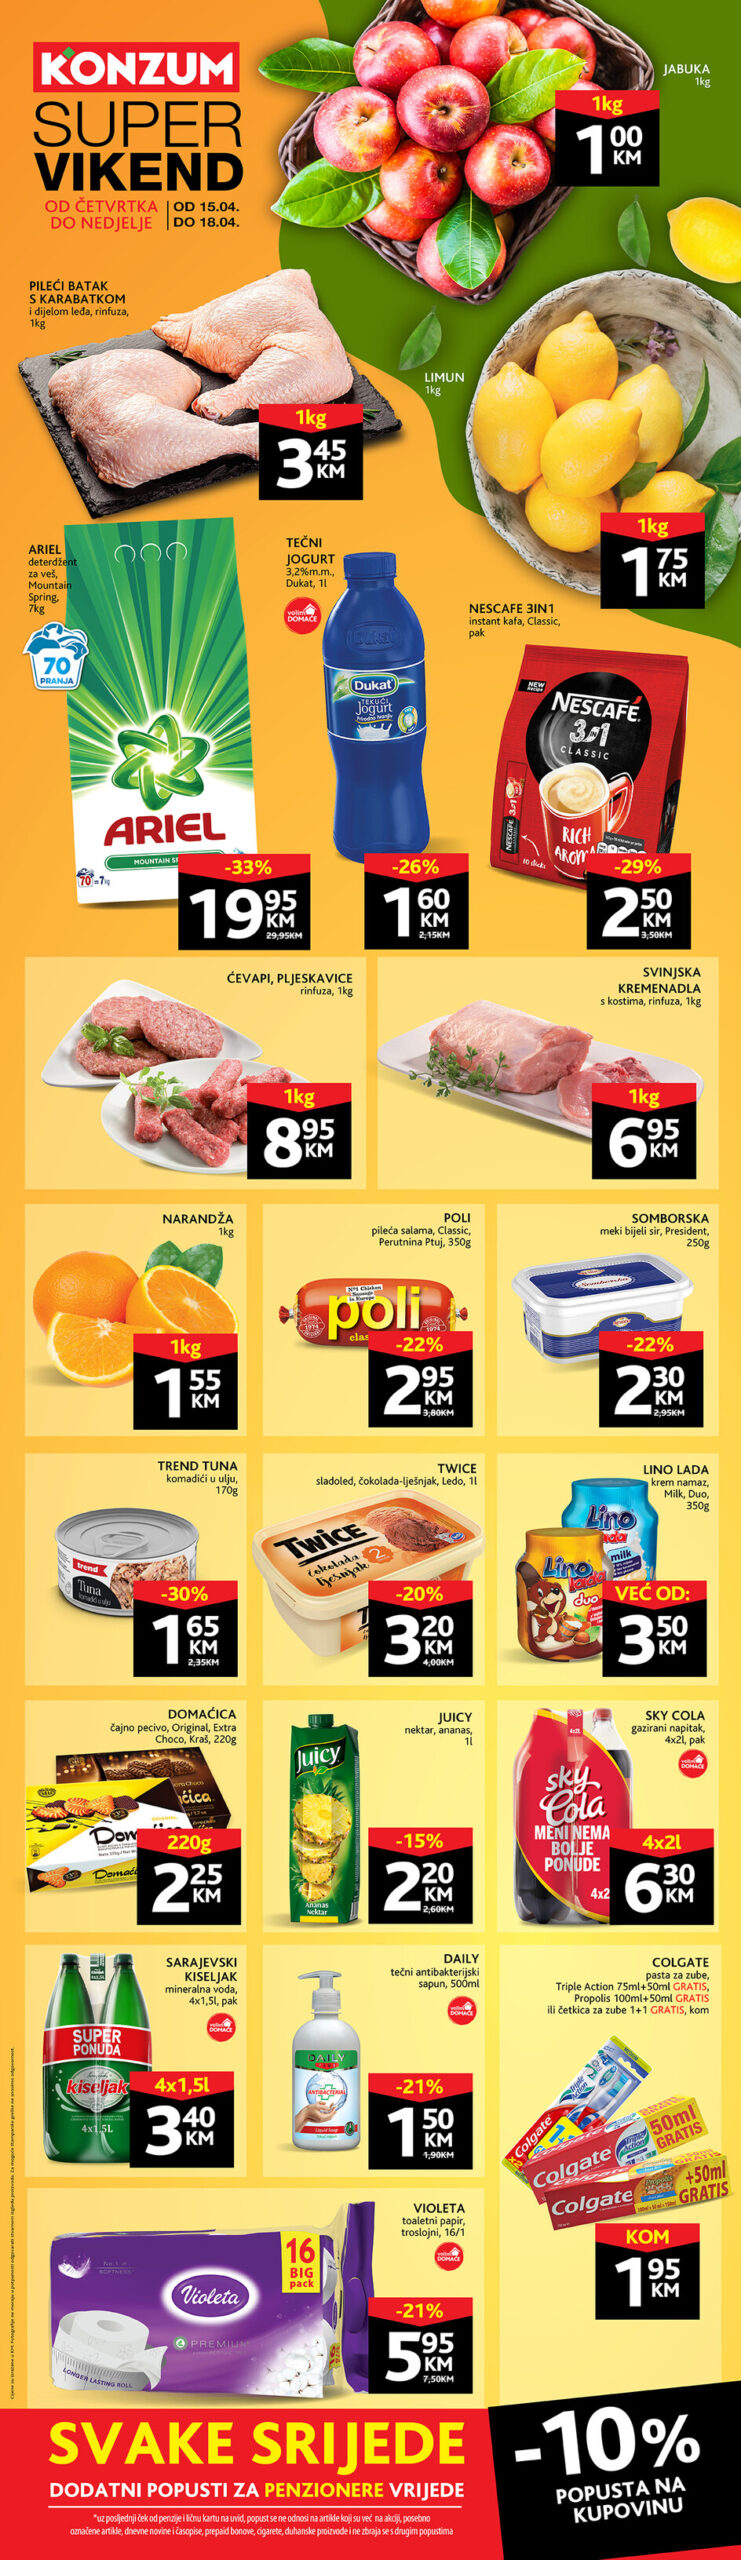 KONZUM Katalog Vikend ackija APRIL 2021 15.04.2021. 18.04.2021.